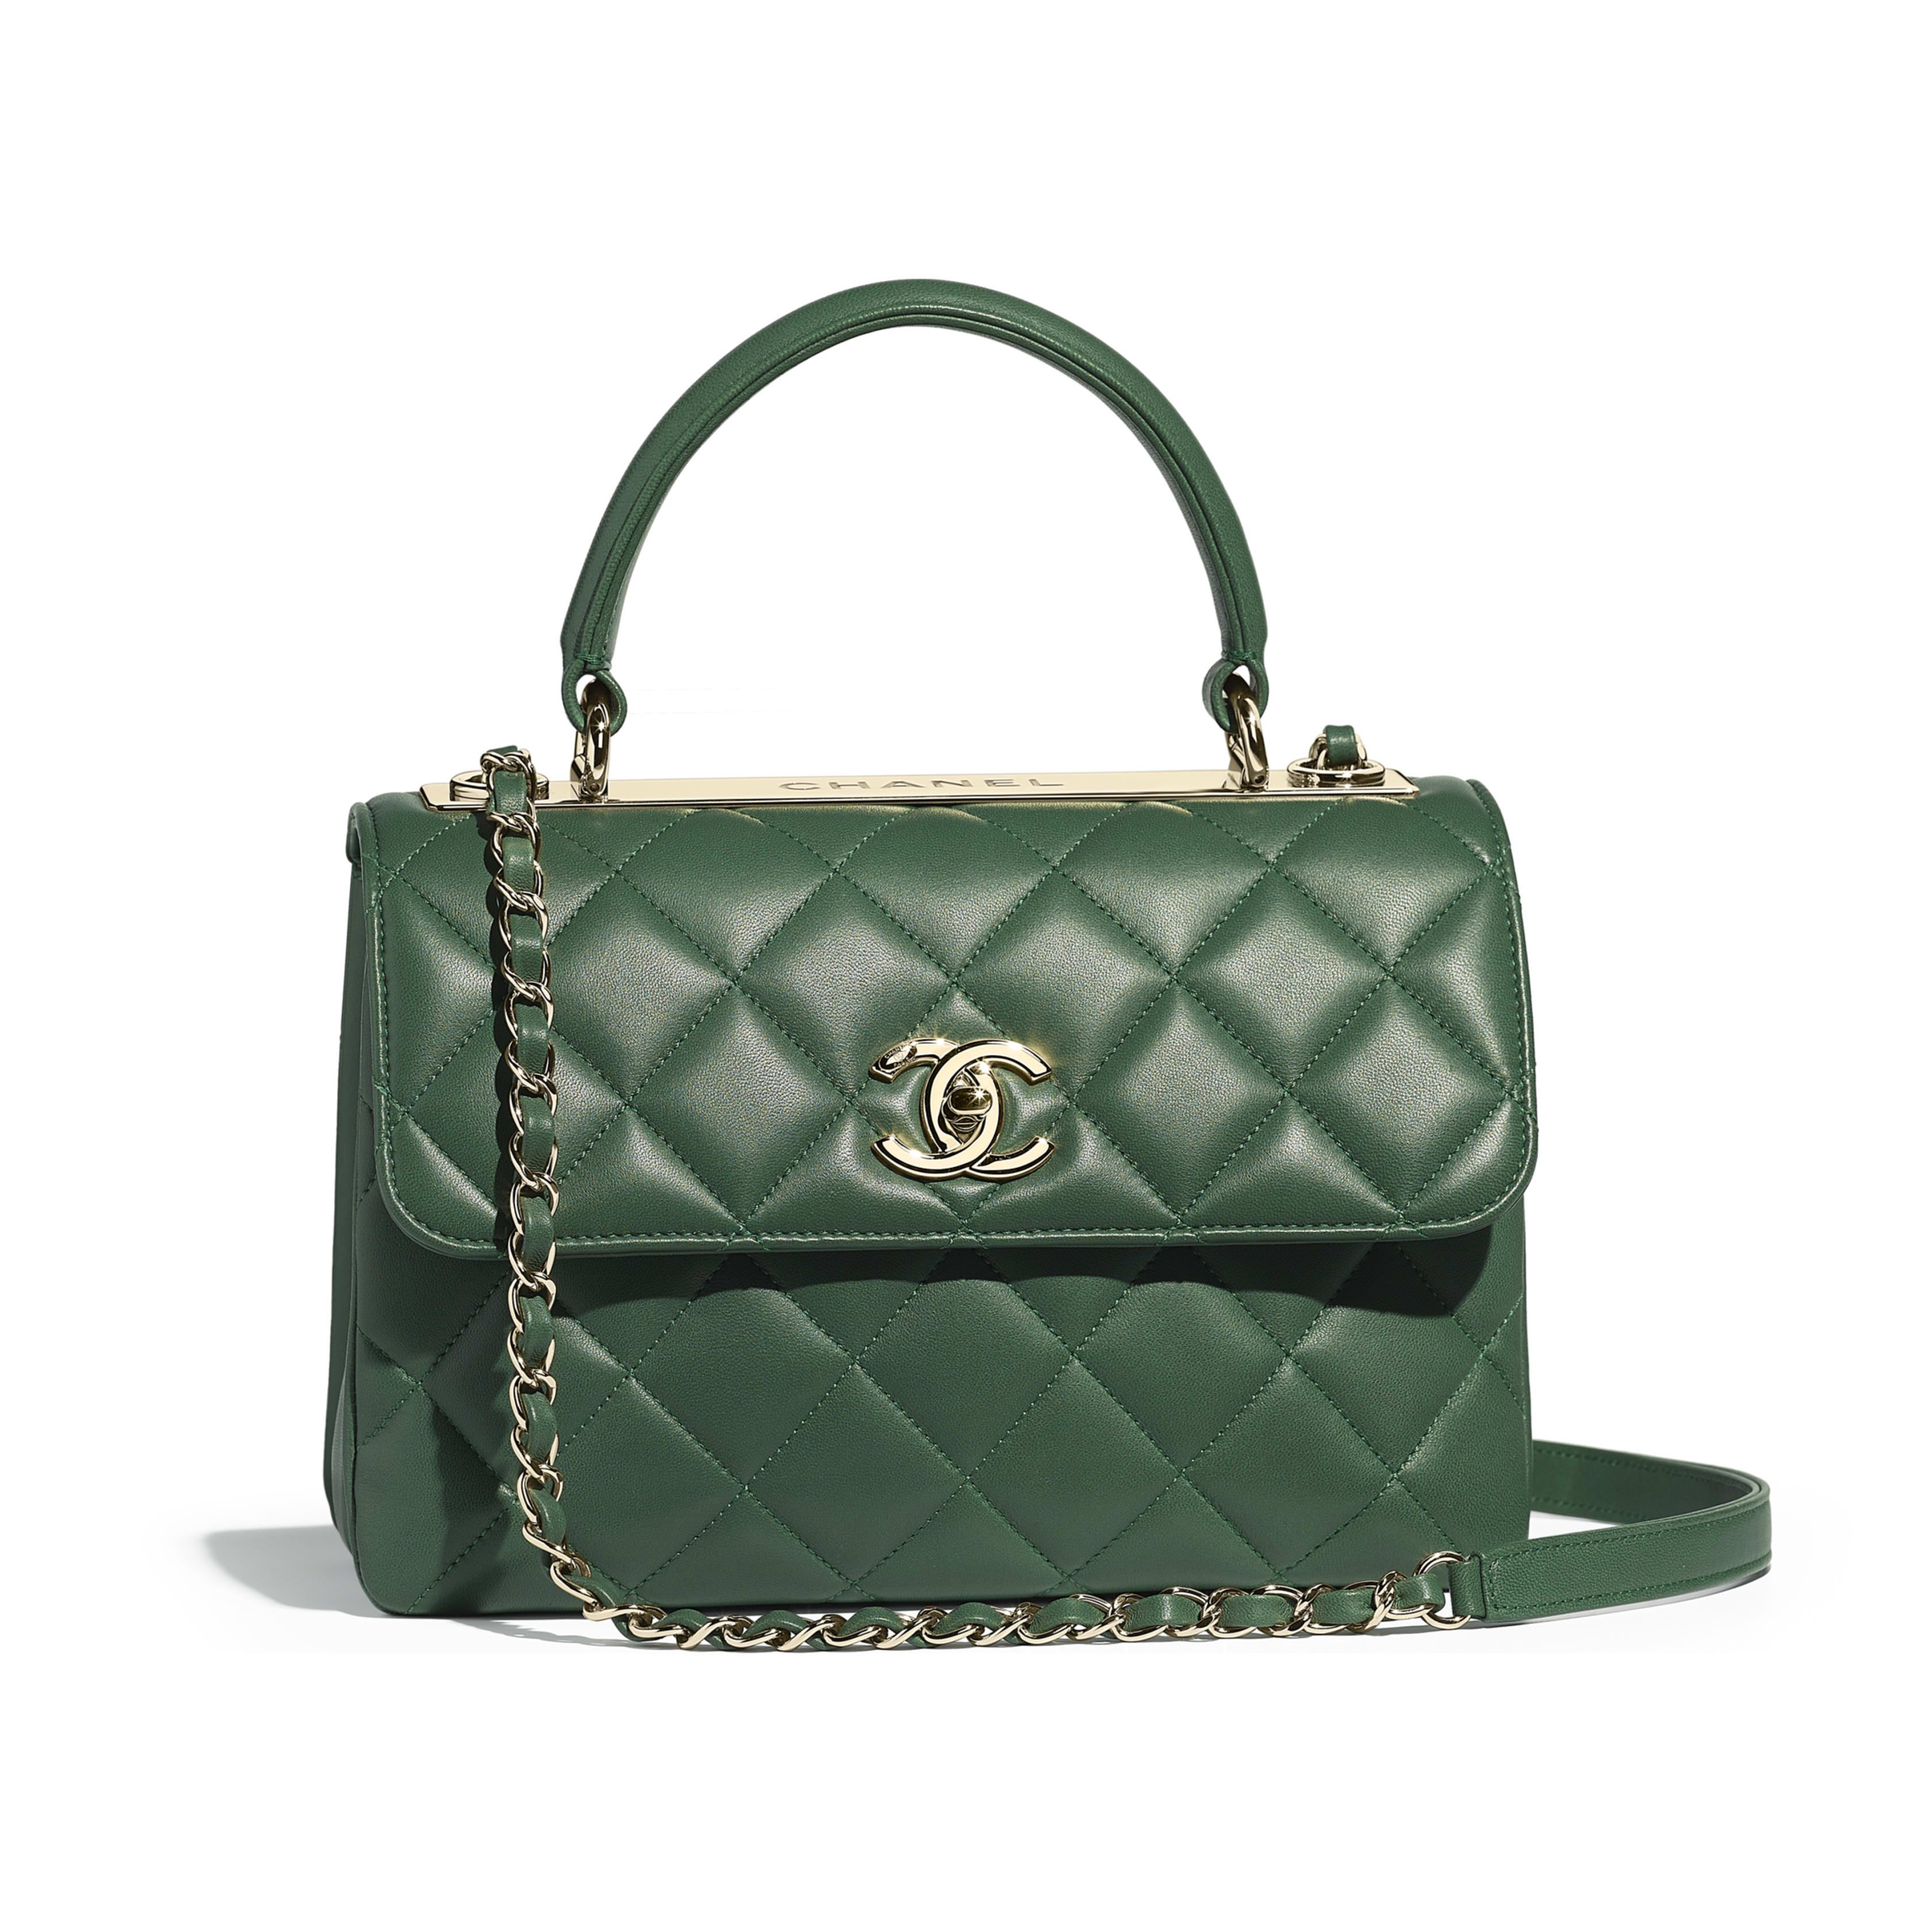 Small Flap Bag with Top Handle Lambskin   Gold-Tone Metal Green - view 1 -  see full sized version f1cd970d57bb1